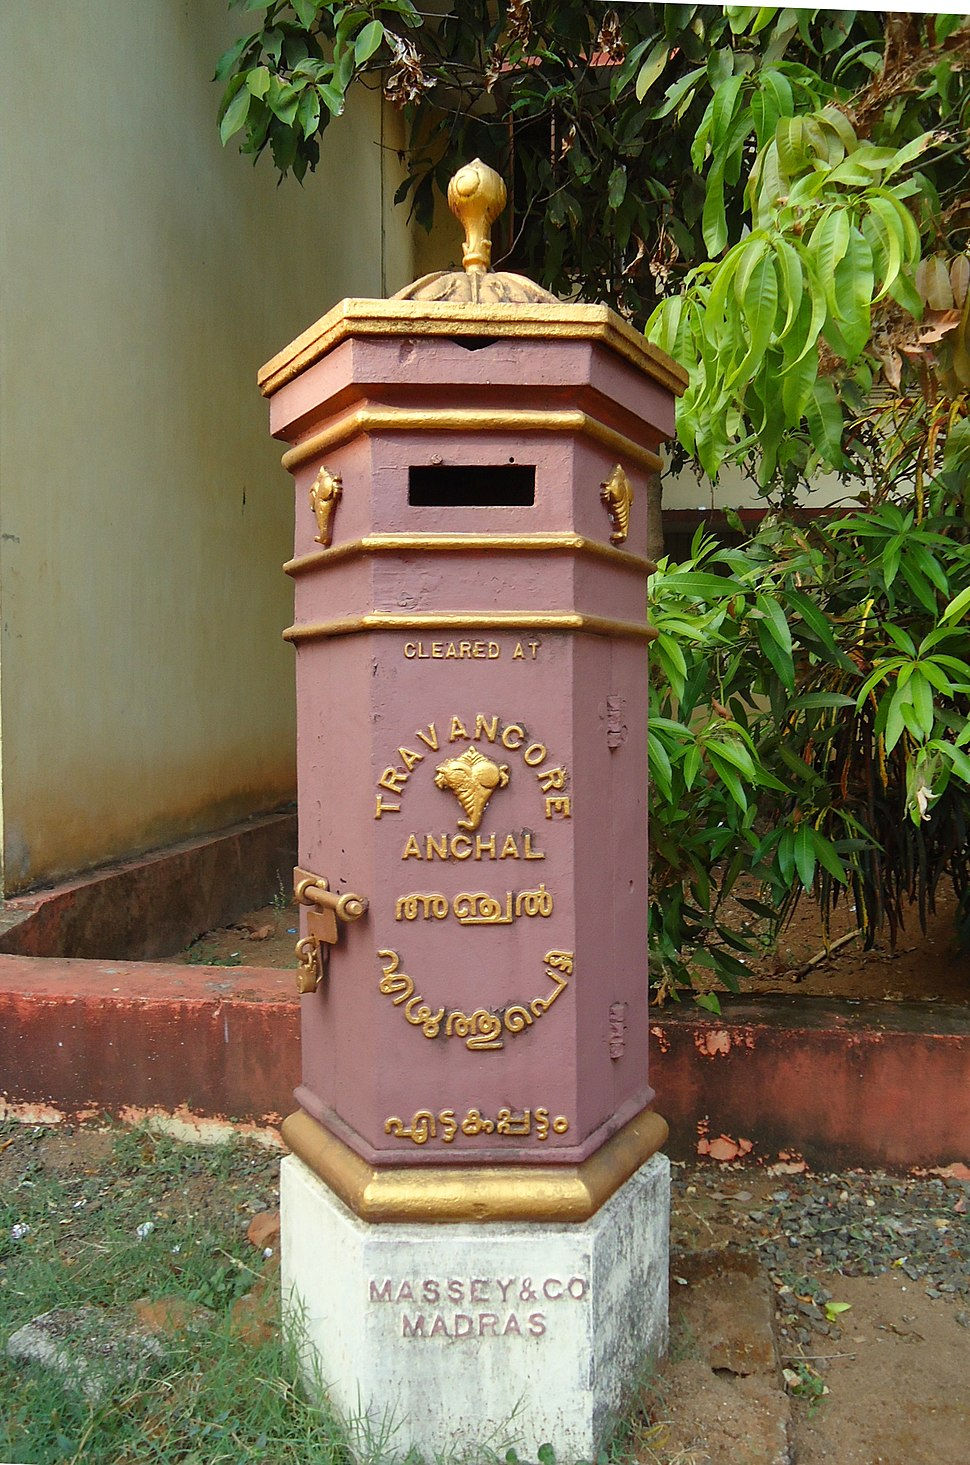 Anchal Box Perumbavoor Rest House